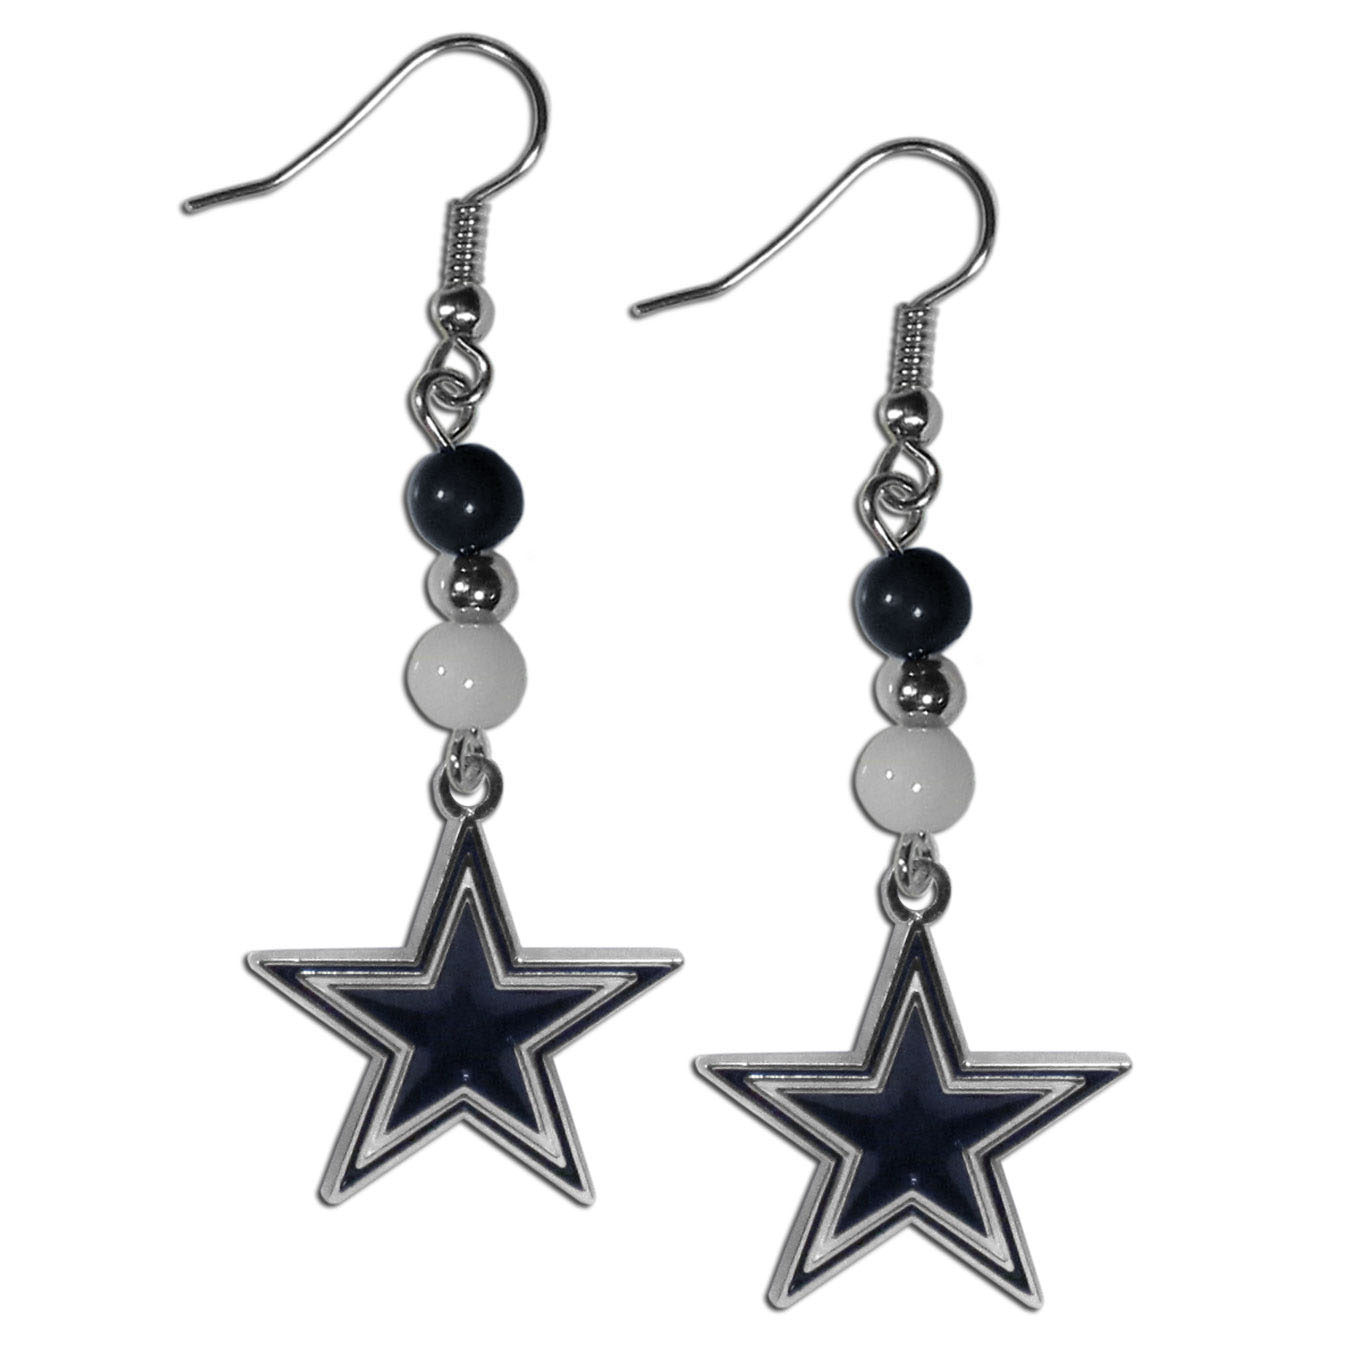 Dallas Cowboys Fan Bead Dangle Earrings - Love your team, show it off with our Dallas Cowboys bead dangle earrings! These super cute earrings hang approximately 2 inches and features 2 team colored beads and a high polish team charm. A must have for game day!